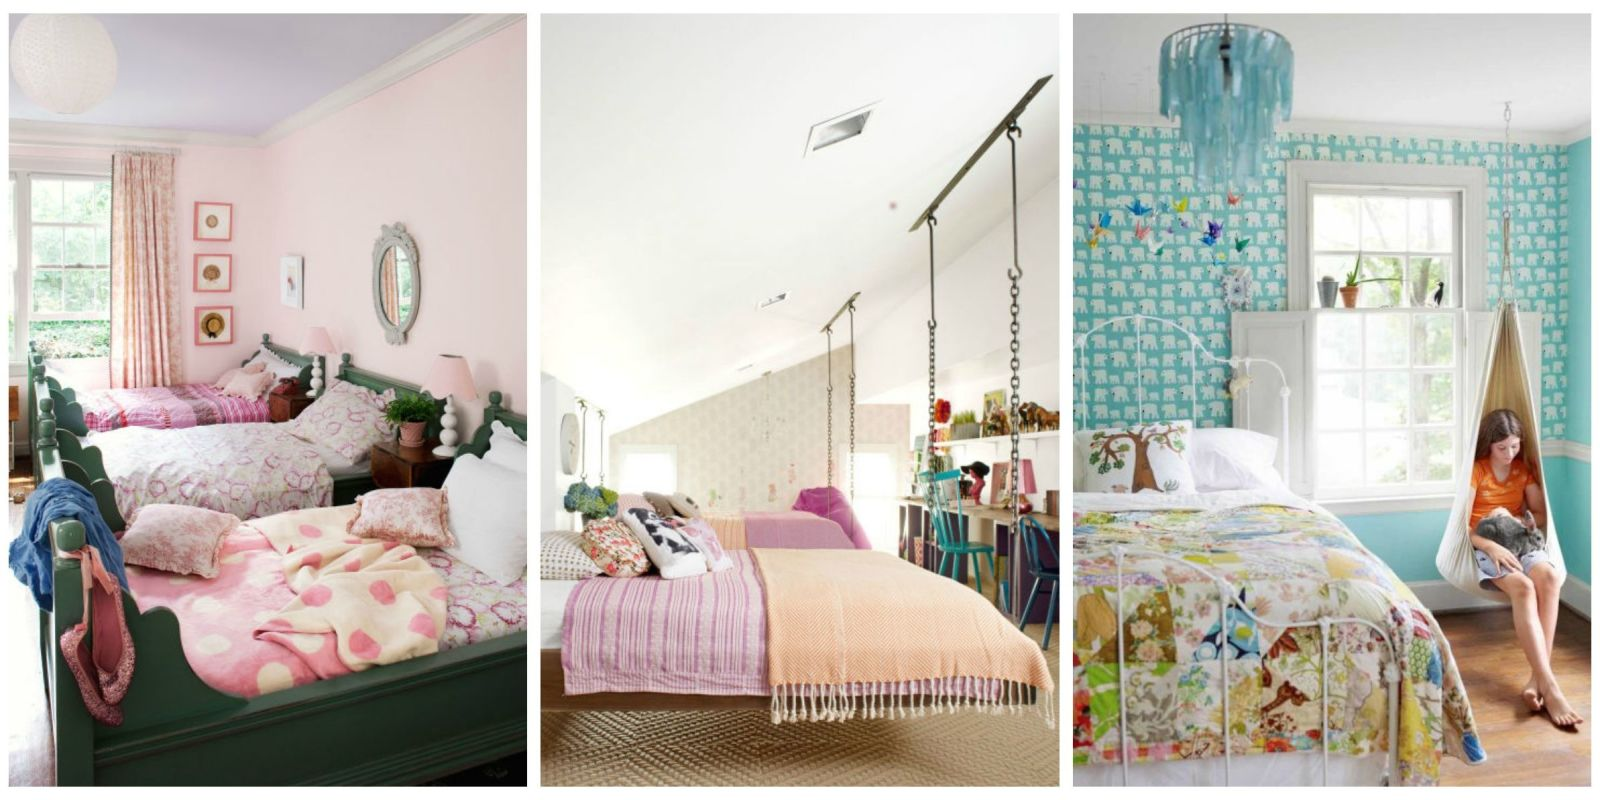 12 Fun Girl's Bedroom Decor Ideas - Cute Room Decorating ... on Girls Room Decorations  id=36665